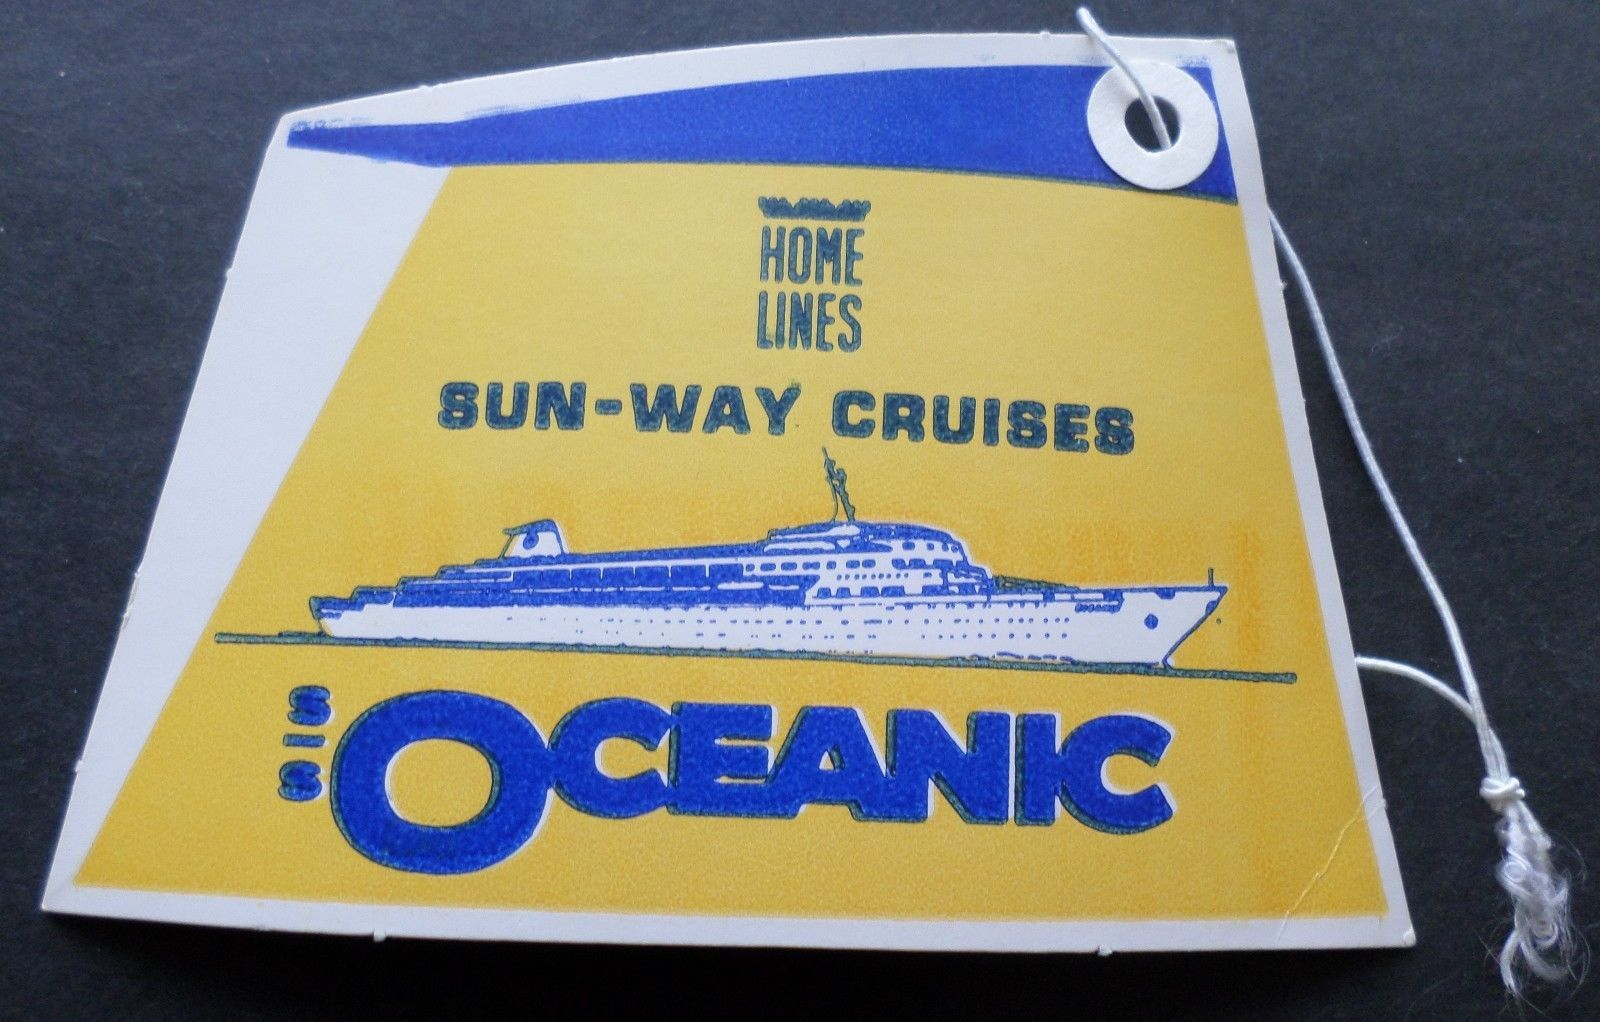 Ss Oceanic Home Lines Baggage Tag Cruise Ship Boat Funnel - Is there smoking on cruise ships